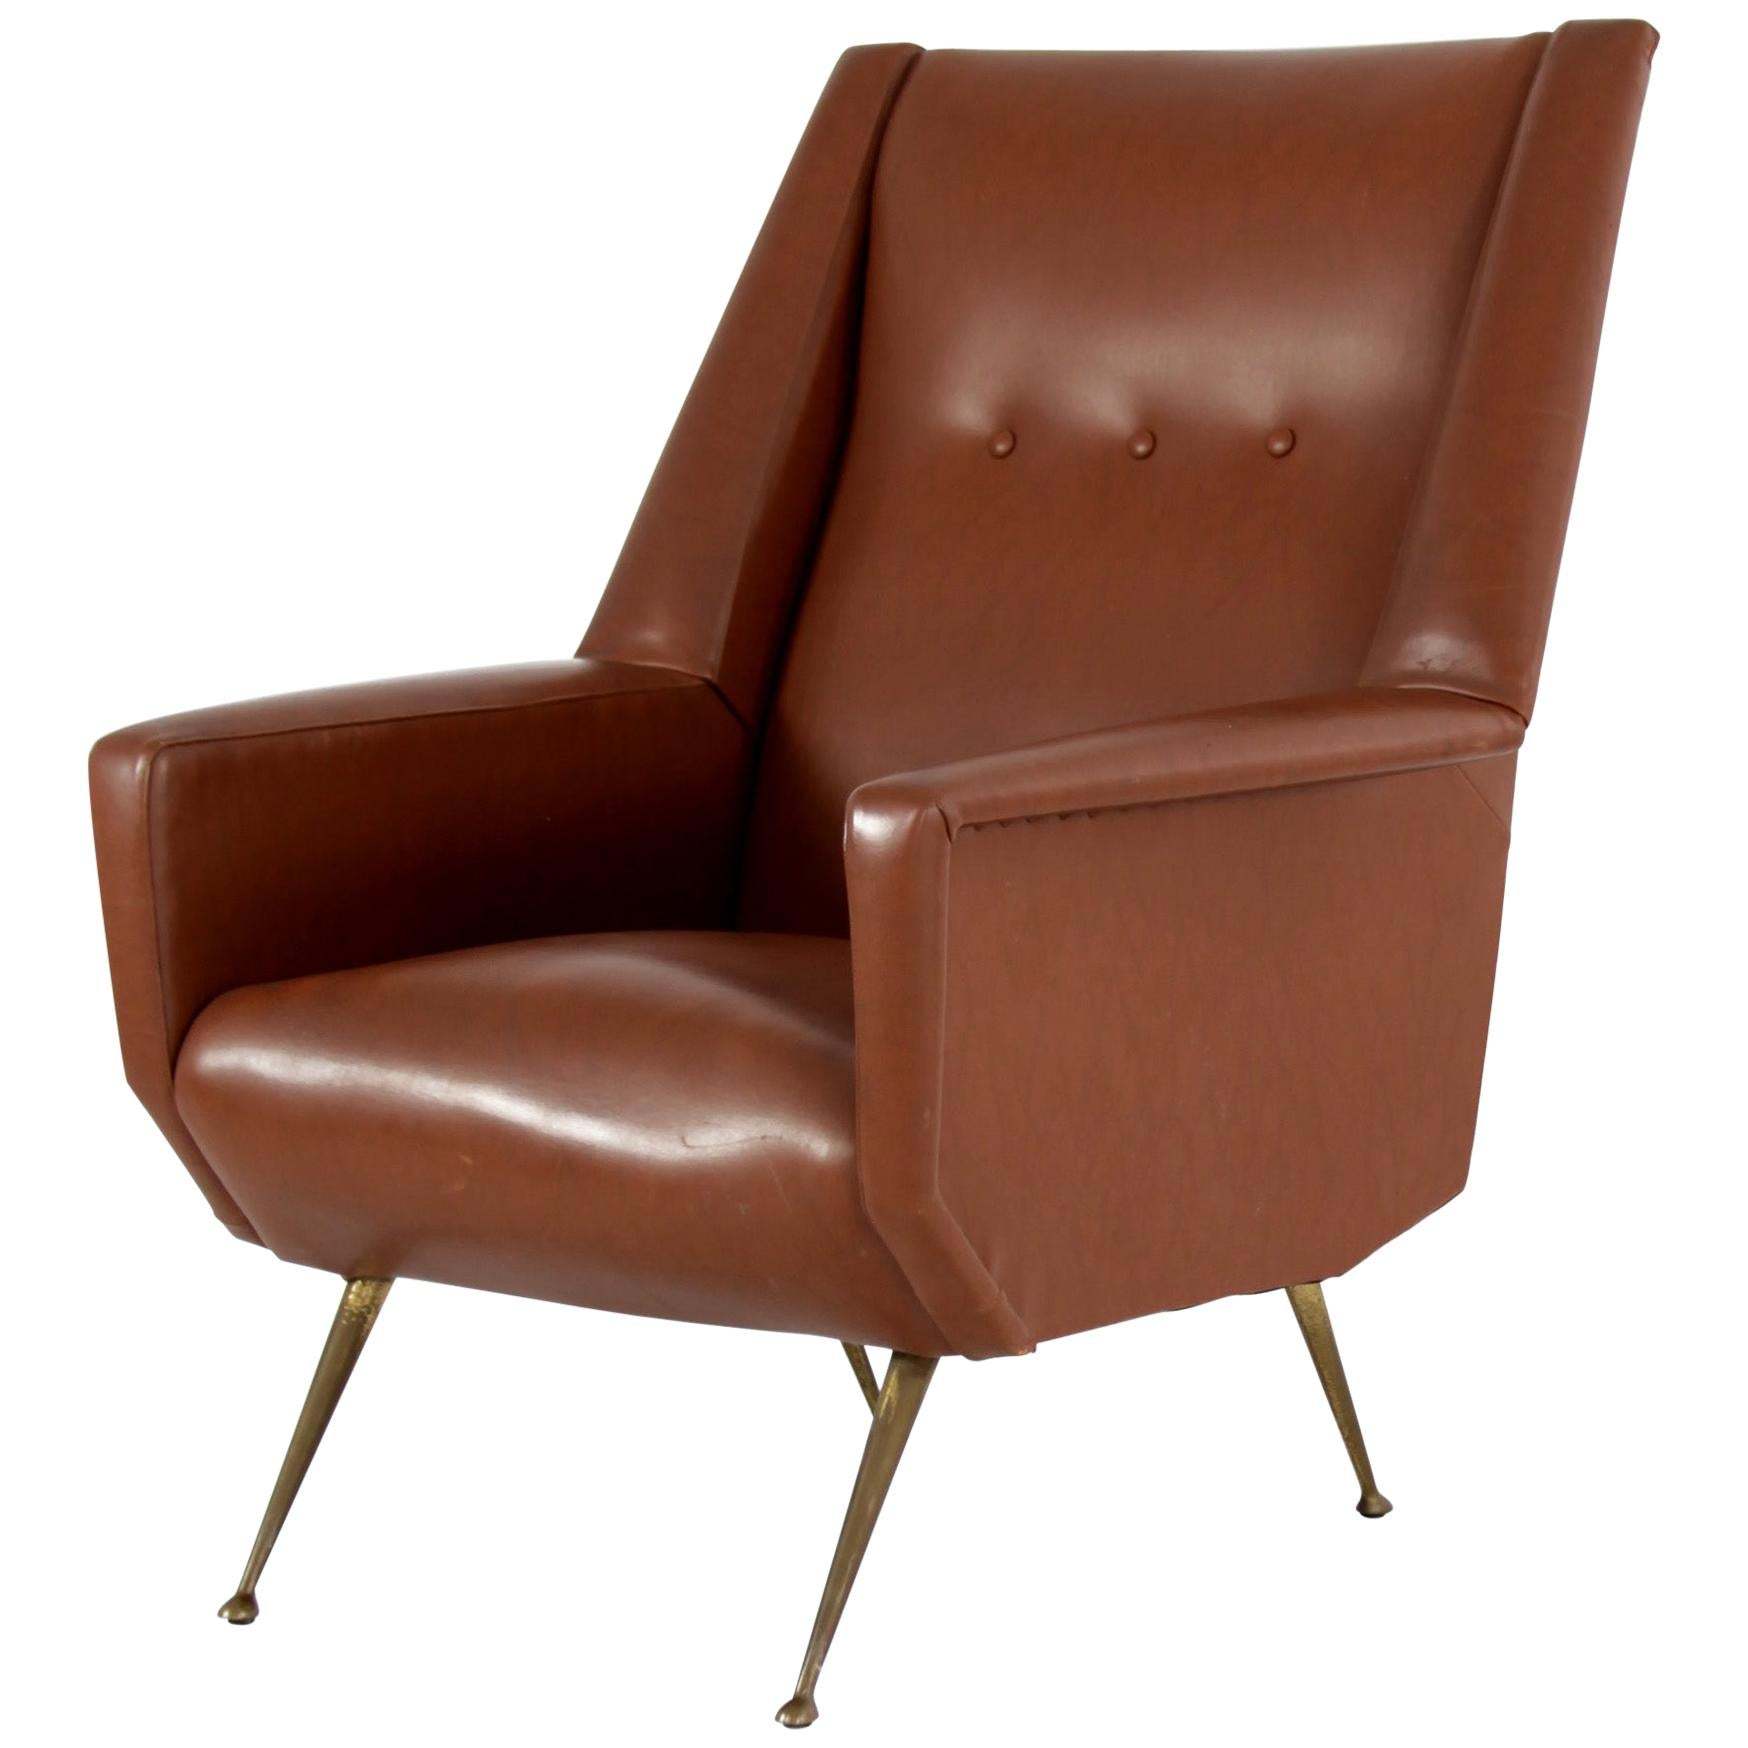 Faux Leather Armchair with Brass Legs, Italy, 1950s